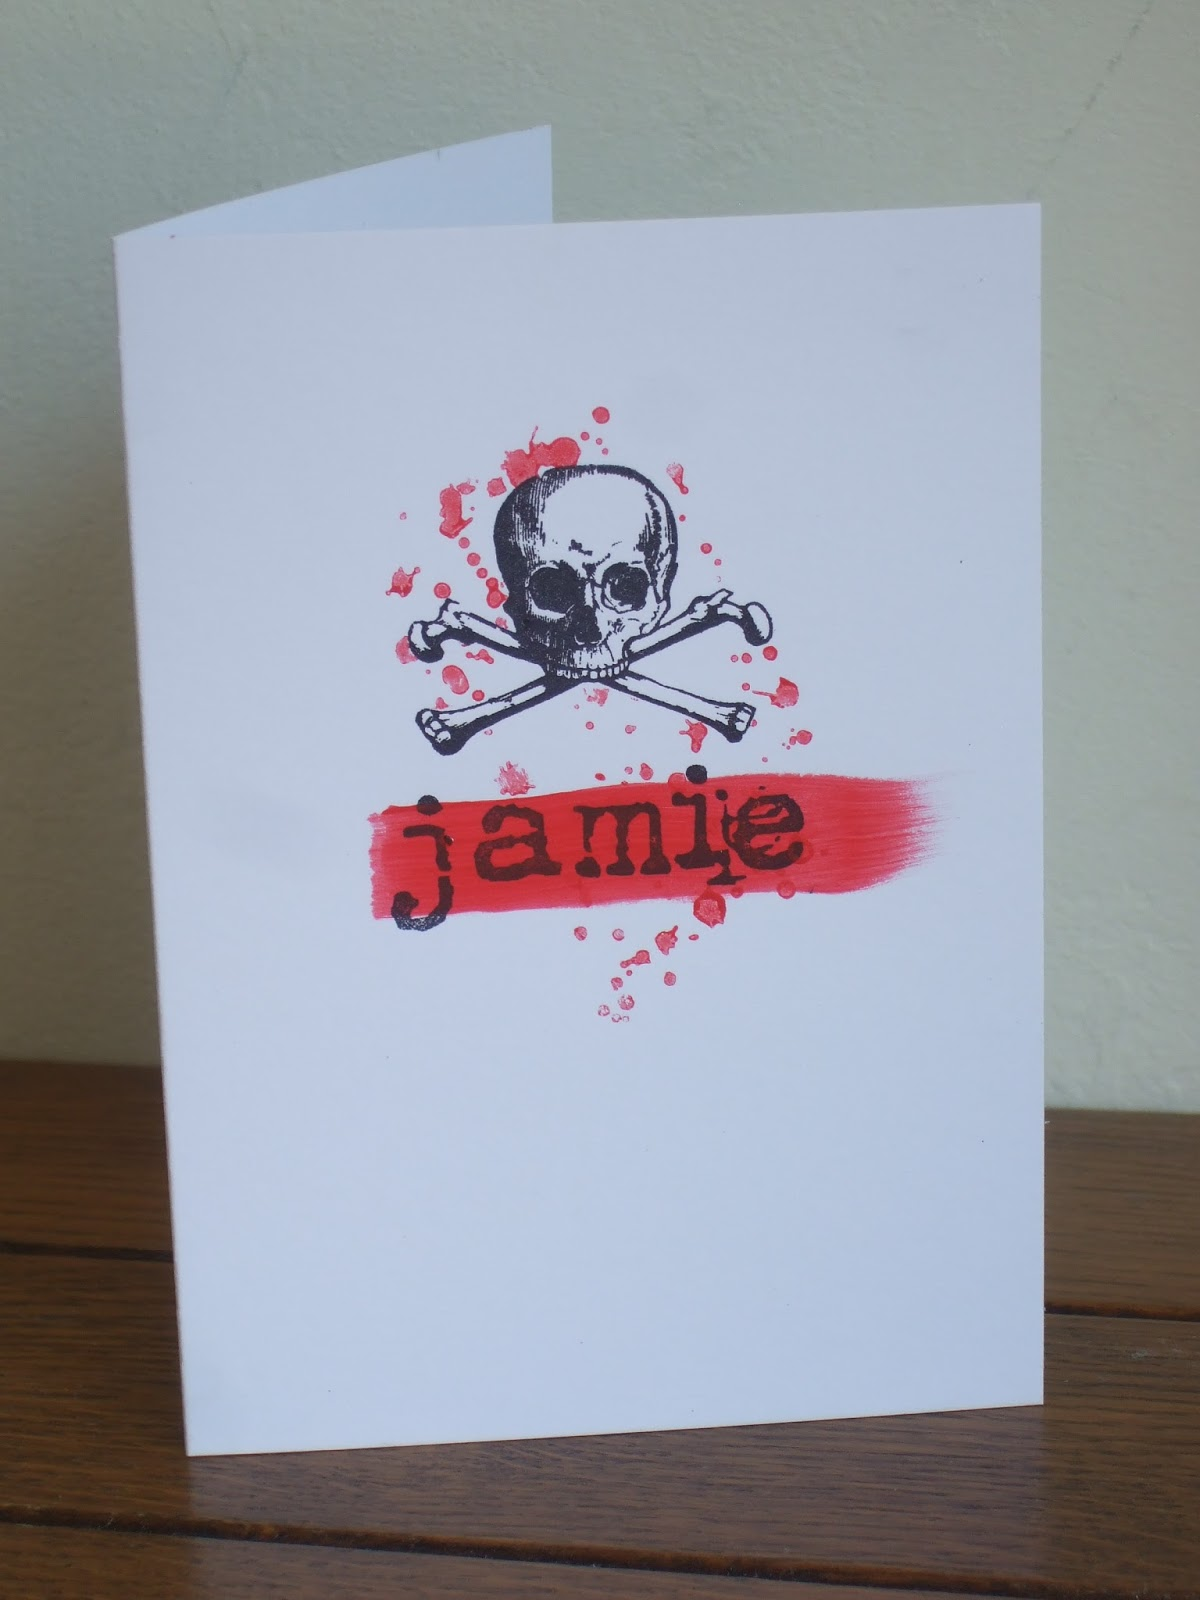 Paperartsy joanne wardle project 2 gothic birthday card as a radiographer i love all things bony so i was really excited by paperartsys very detailed skull images i wanted to use some of these halloween bookmarktalkfo Gallery